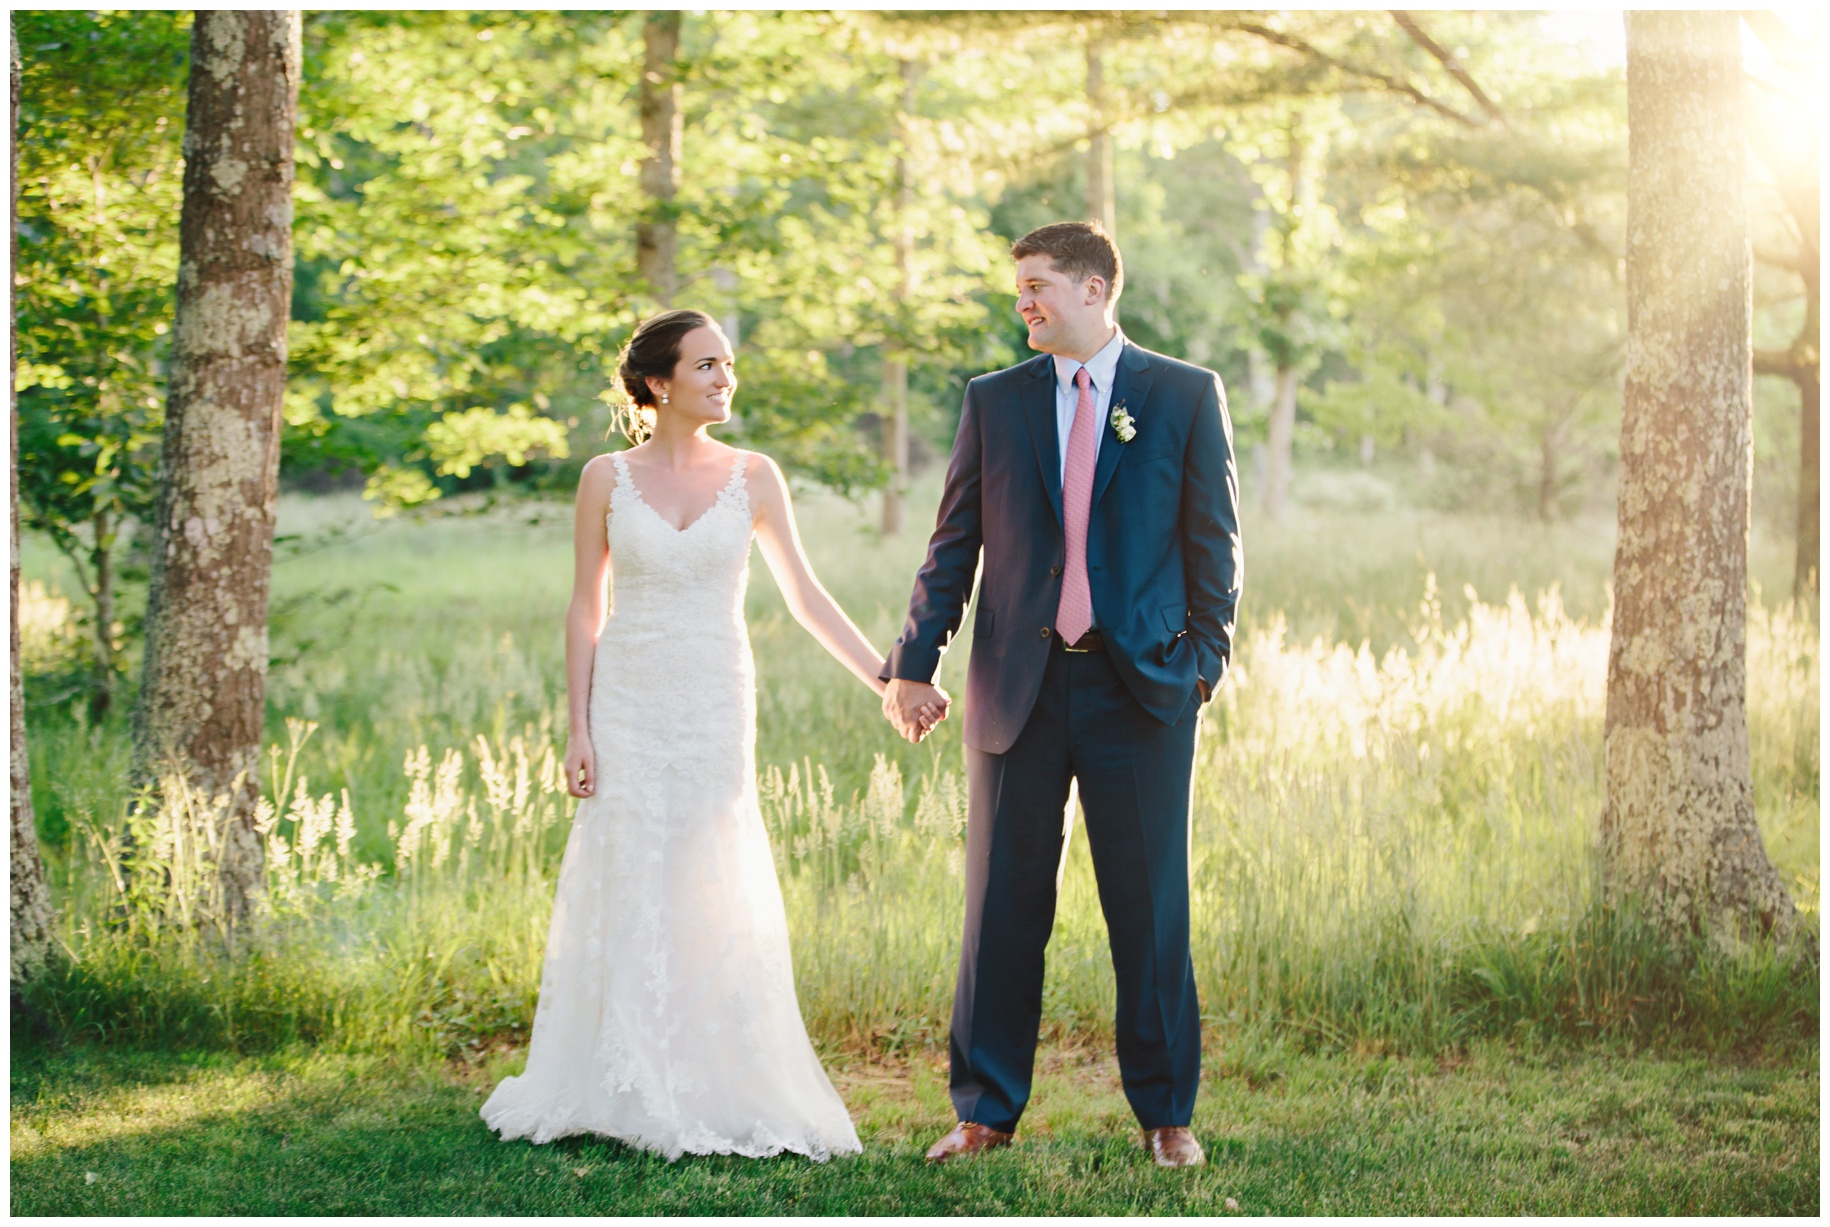 maineweddingphotographer_massachusetts_marthasvineyard_island_newengland-058